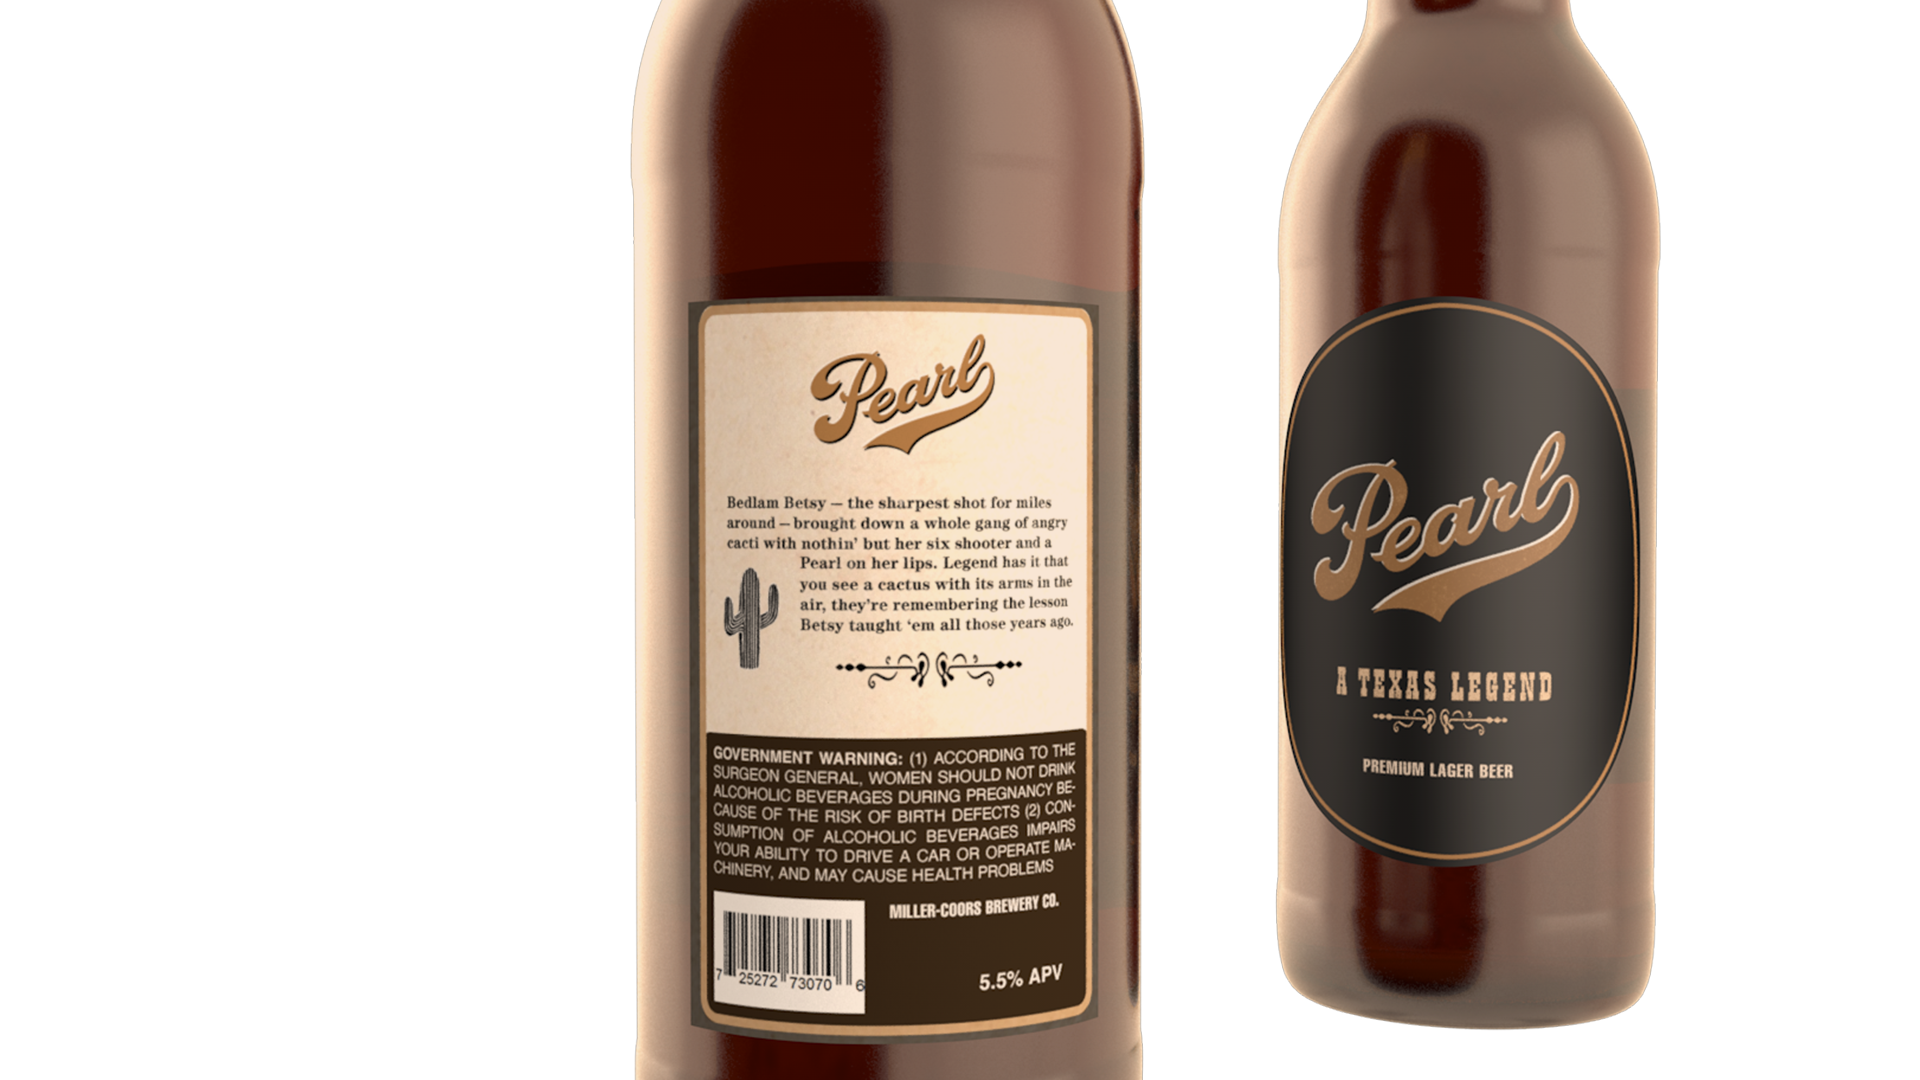 Pearl Beer Bottle Packaging Design | Close Up